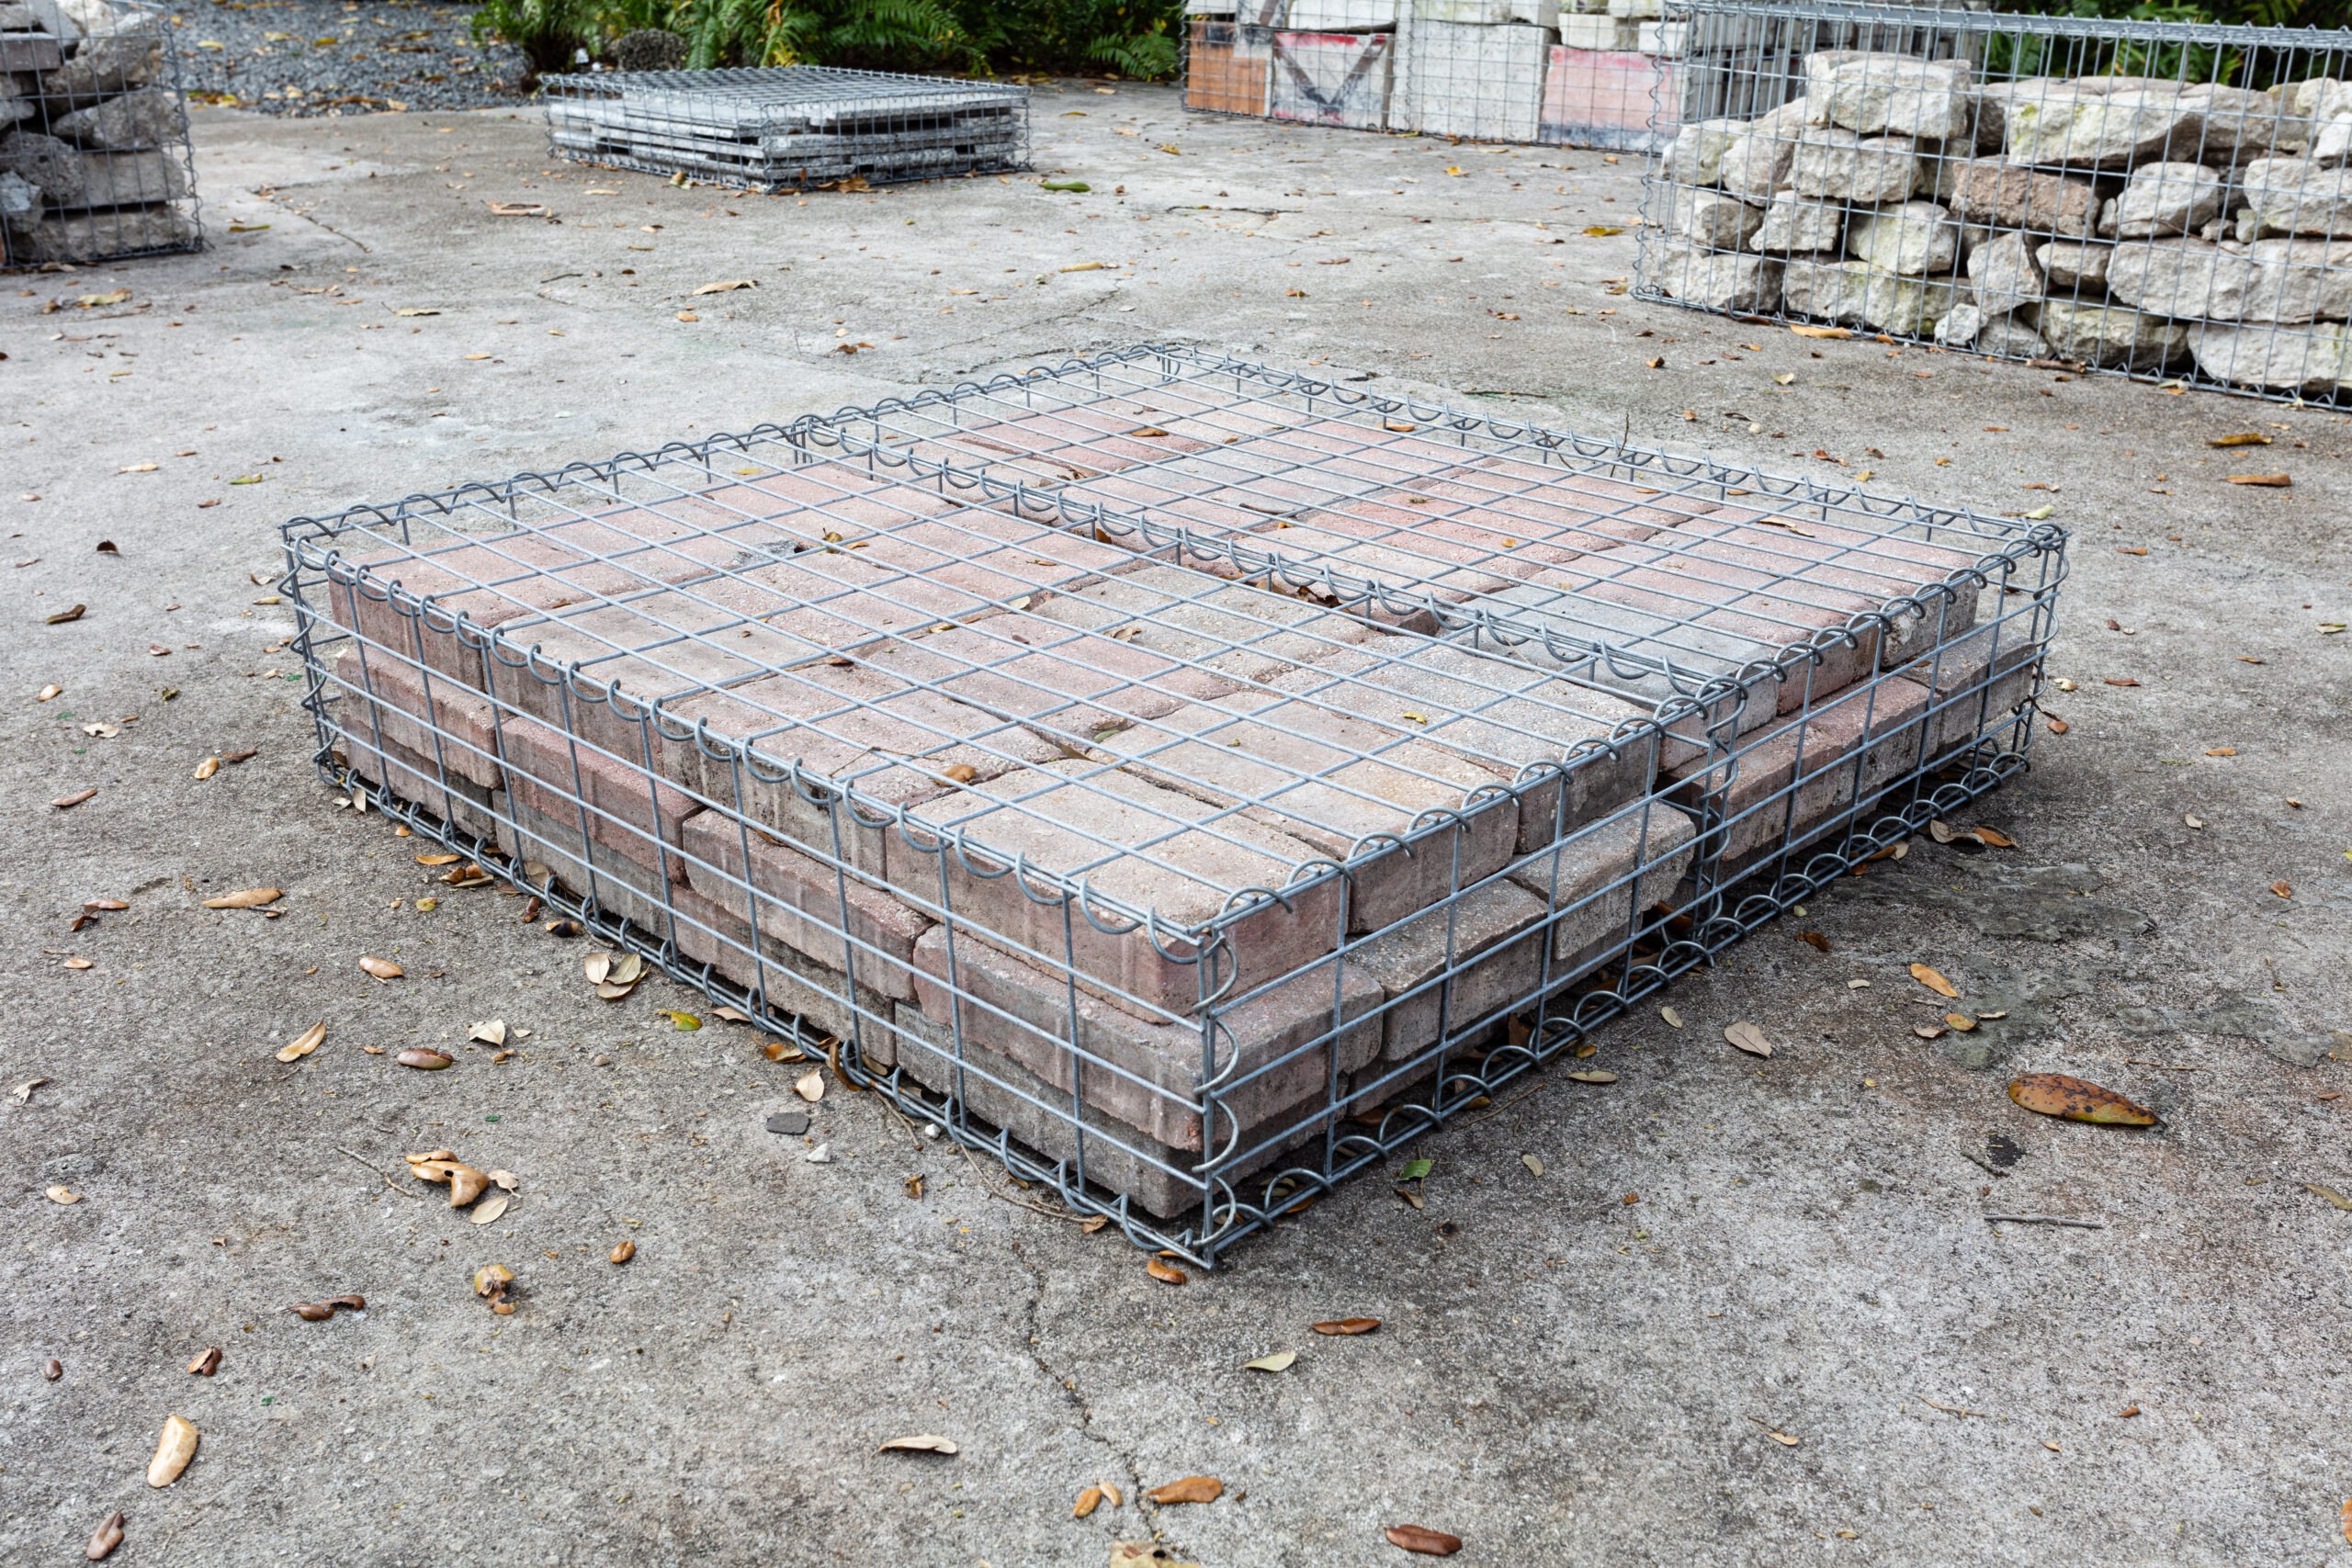 Tom Scicluna, 33190, 2021, gabion cages and concrete pavers, 9 x 40 x 40 in.